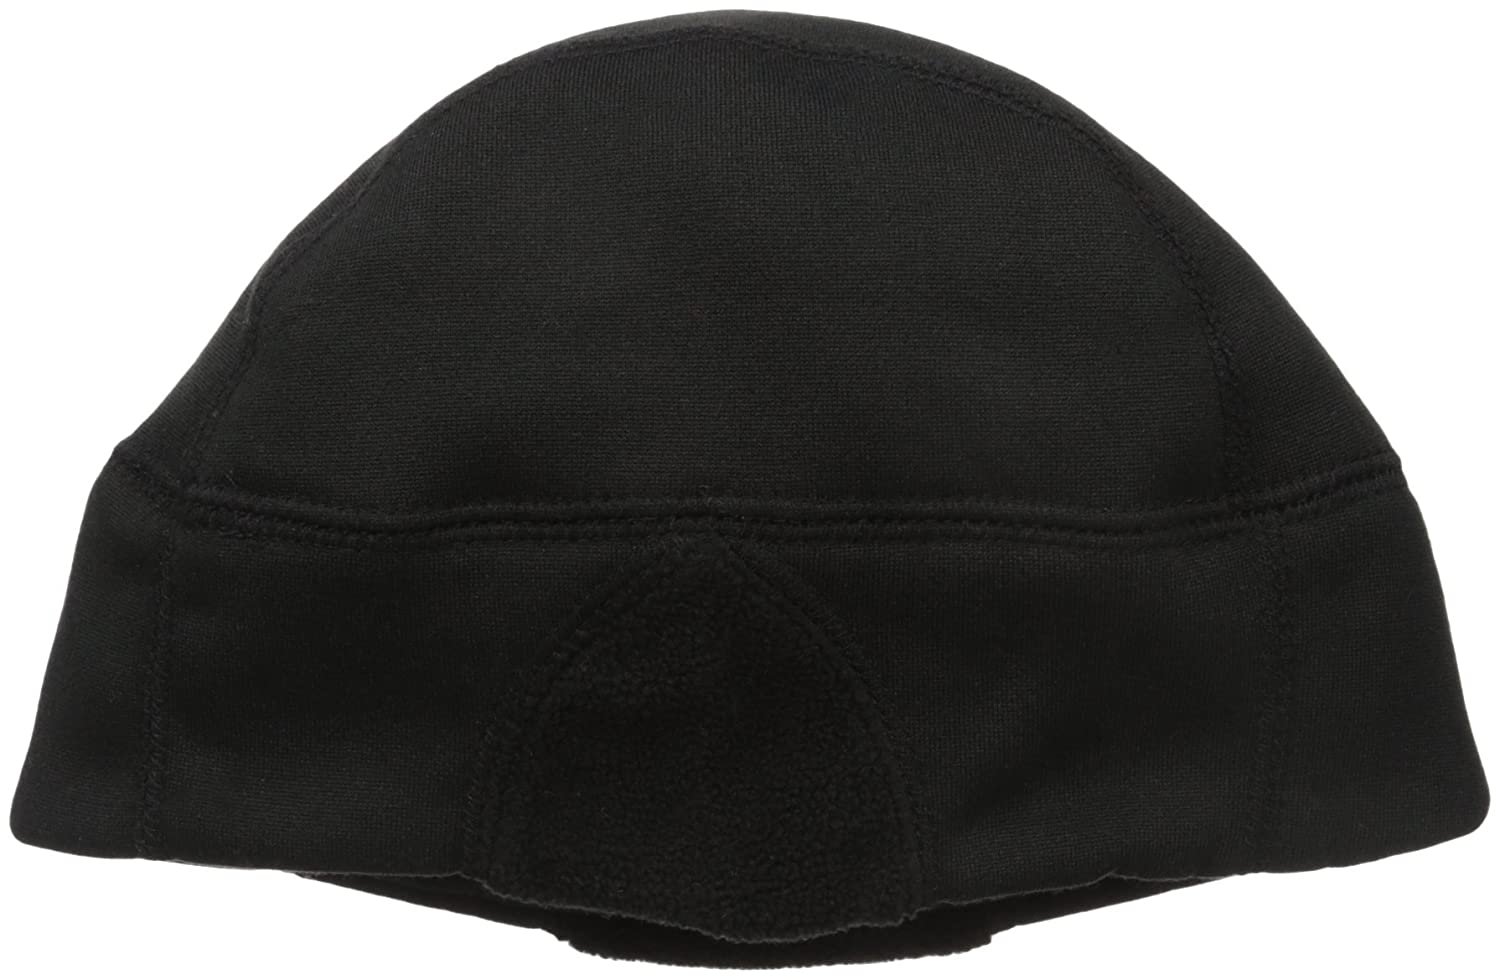 Amazon.com   Urban Boundaries Moisture Wicking Thermal Black Running Winter  Skull Cap Beanie for Men   Cold Weather Hats   Sports   Outdoors 5afbb2f8802c